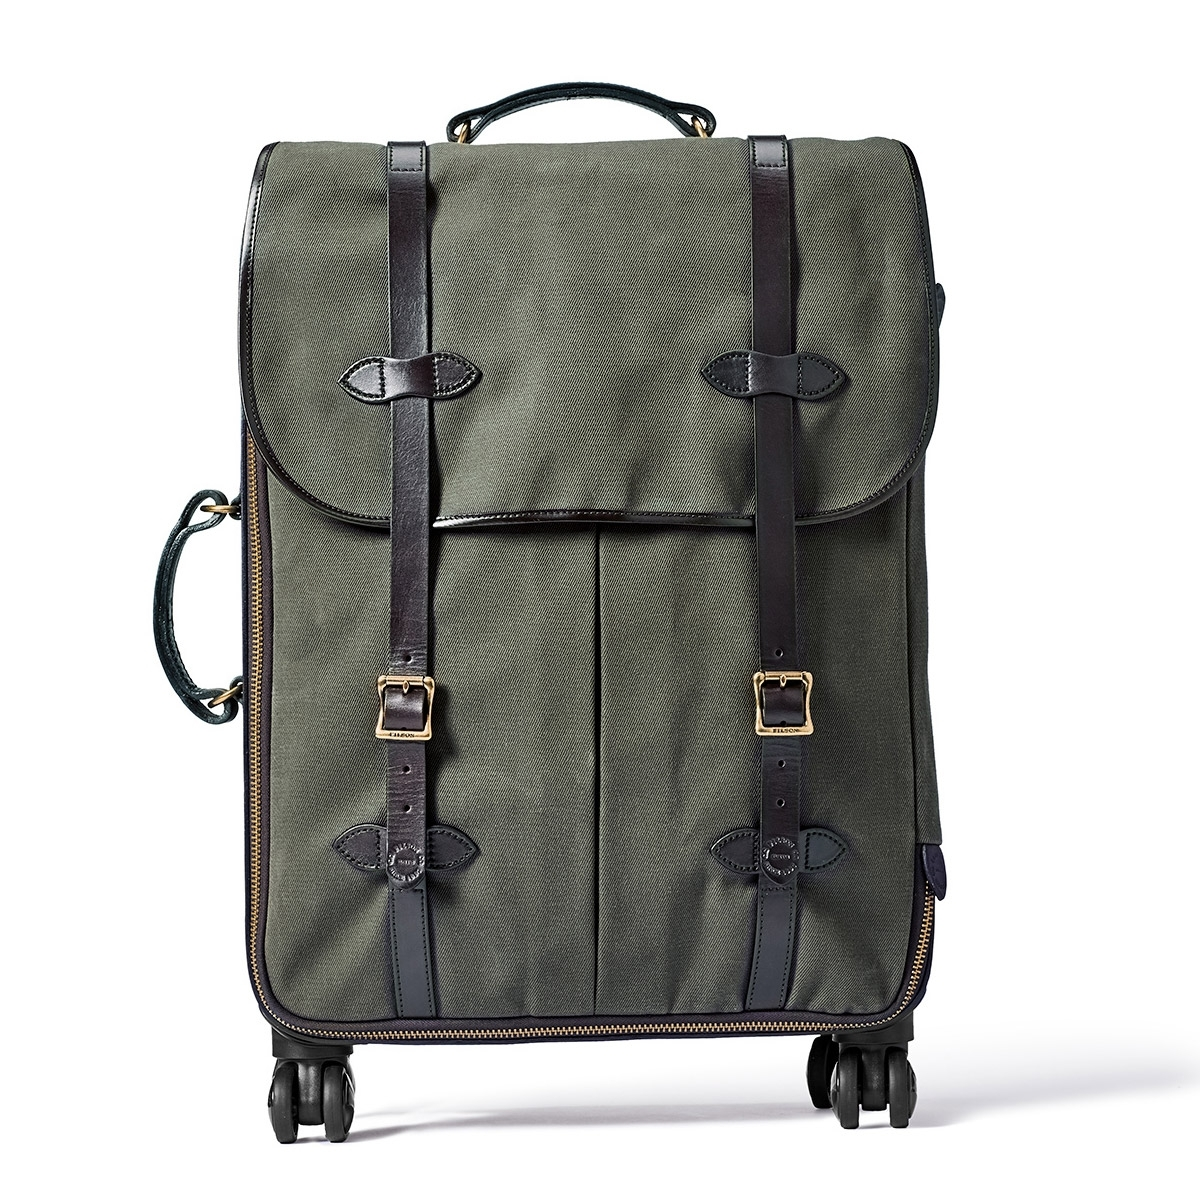 Filson Rugged Twill Rolling 4-Wheel Check-In Bag 20069584-Otter Green